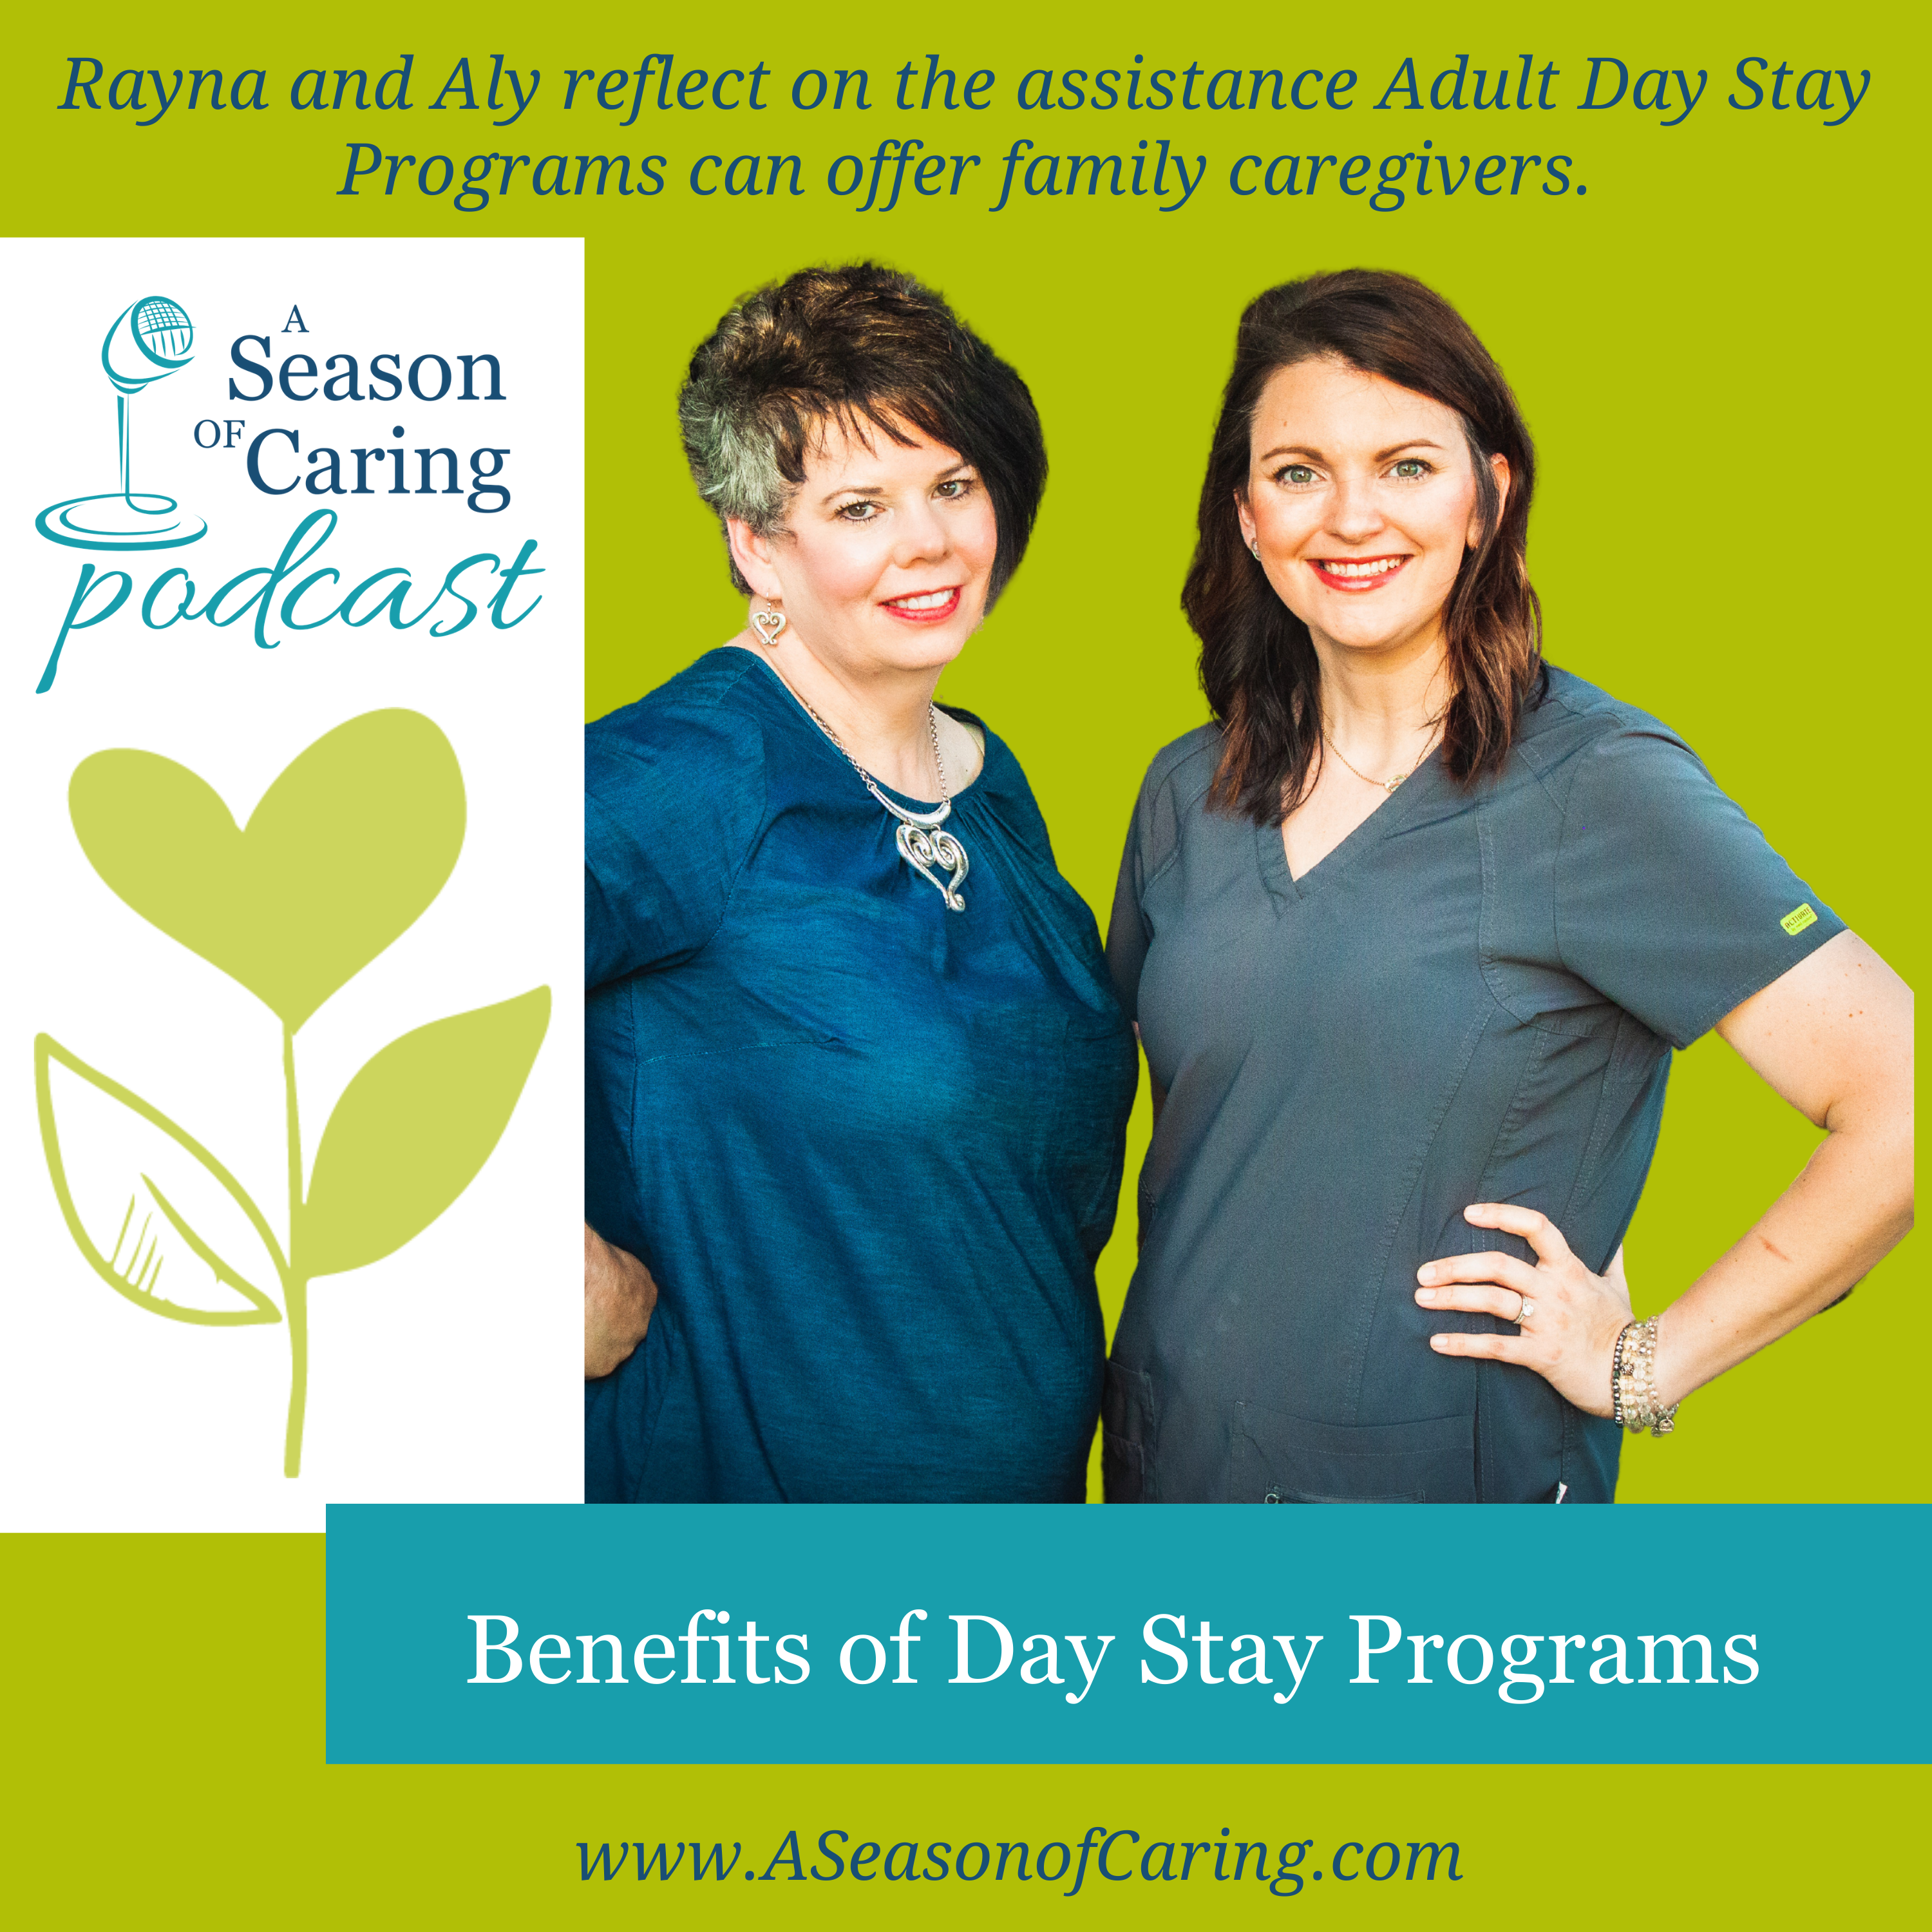 Benefits of Day Stay Programs